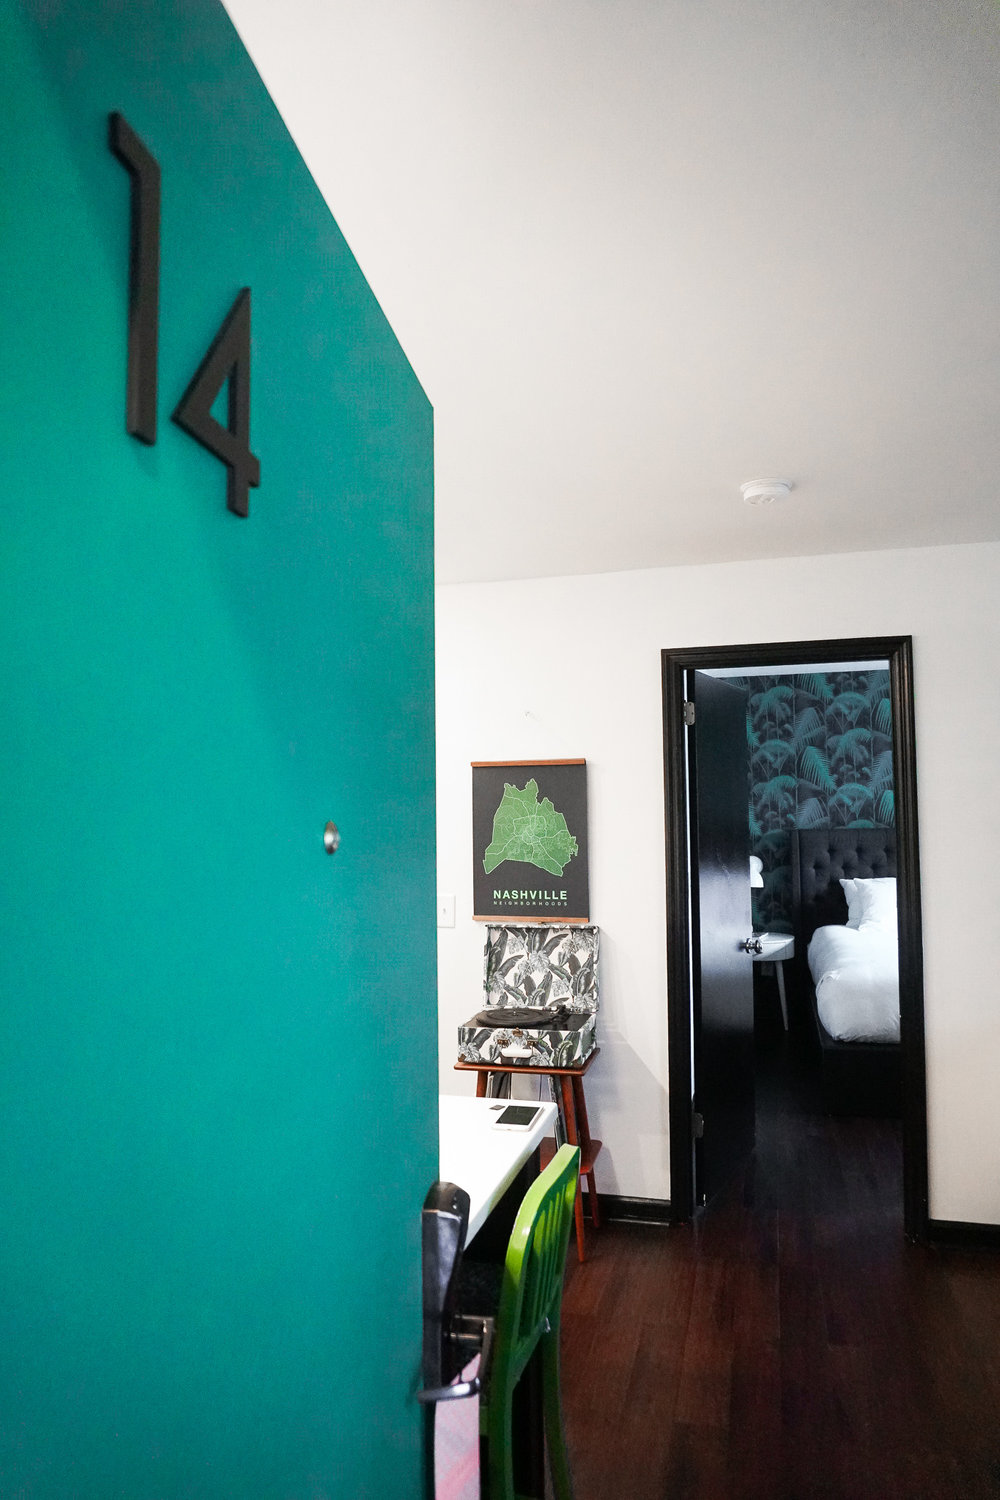 where-to-stay-nashville-sobro-guest-house-boutique-hotel.jpg